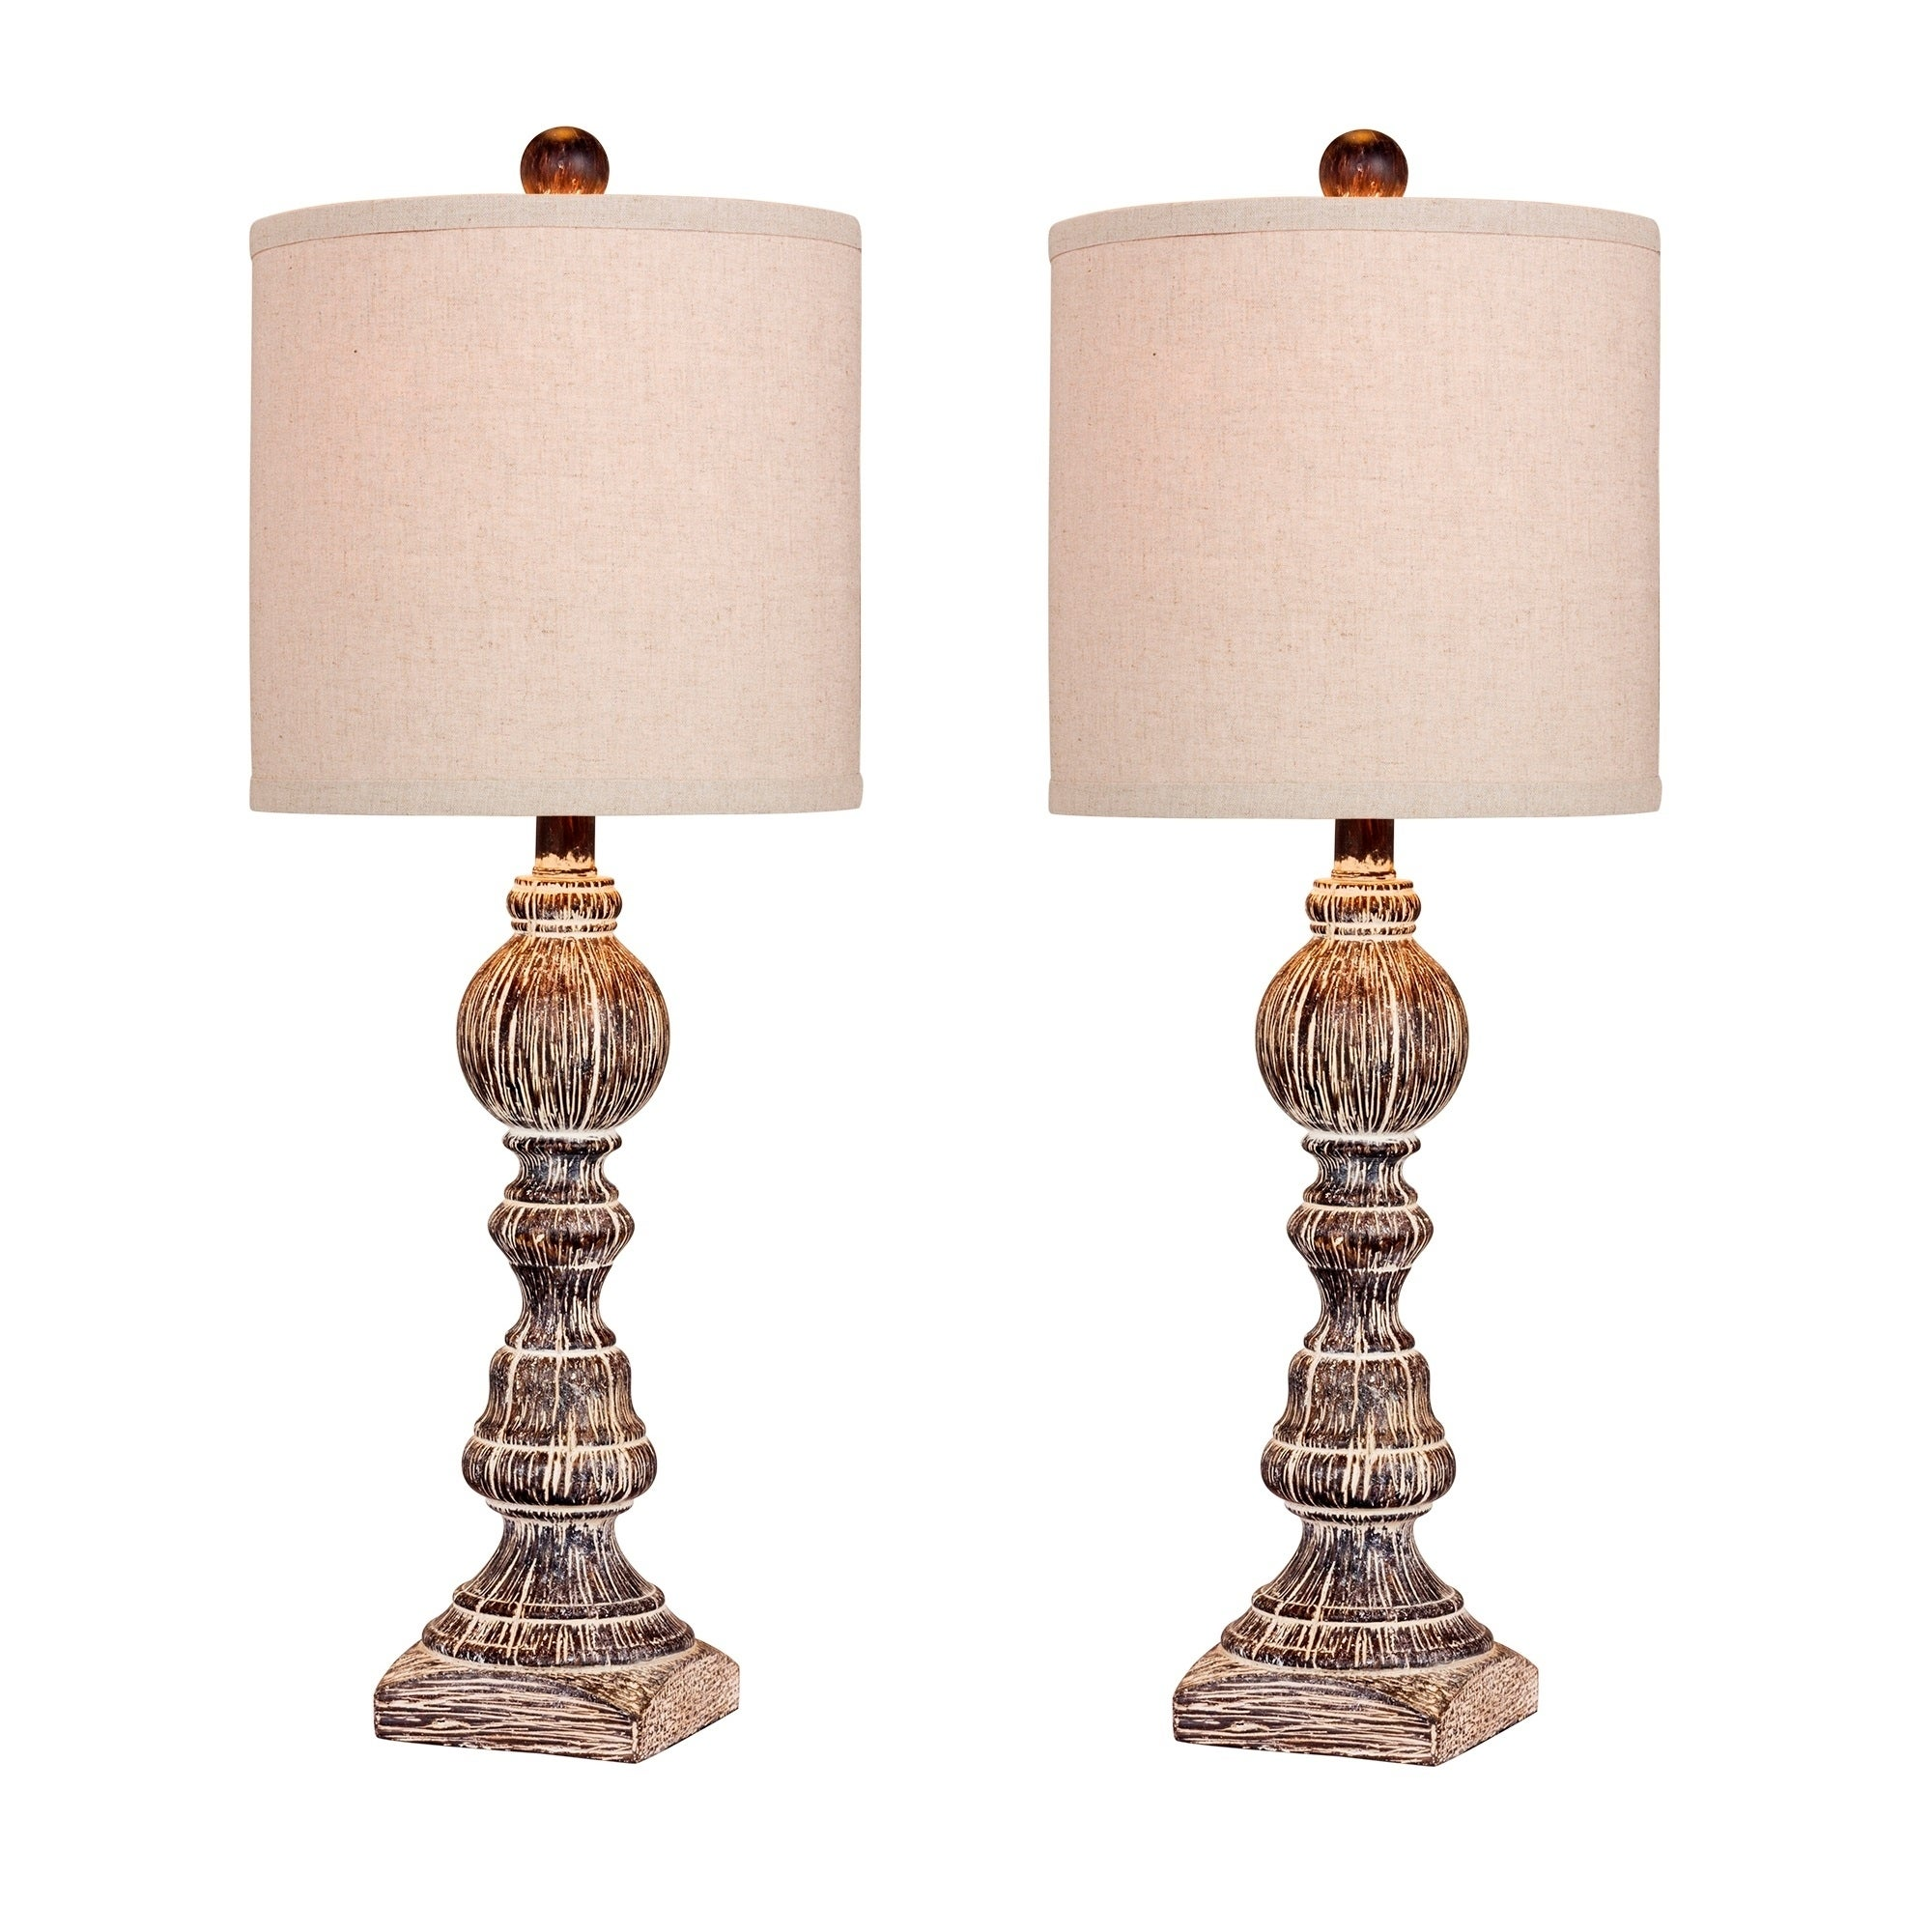 Picture of: Fangio Lighting S 6241cabr 2pk Pair Of 26 In Distressed Balustrade Resin Table Lamps In A Cottage Antique Brown Finish Overstock 18055039